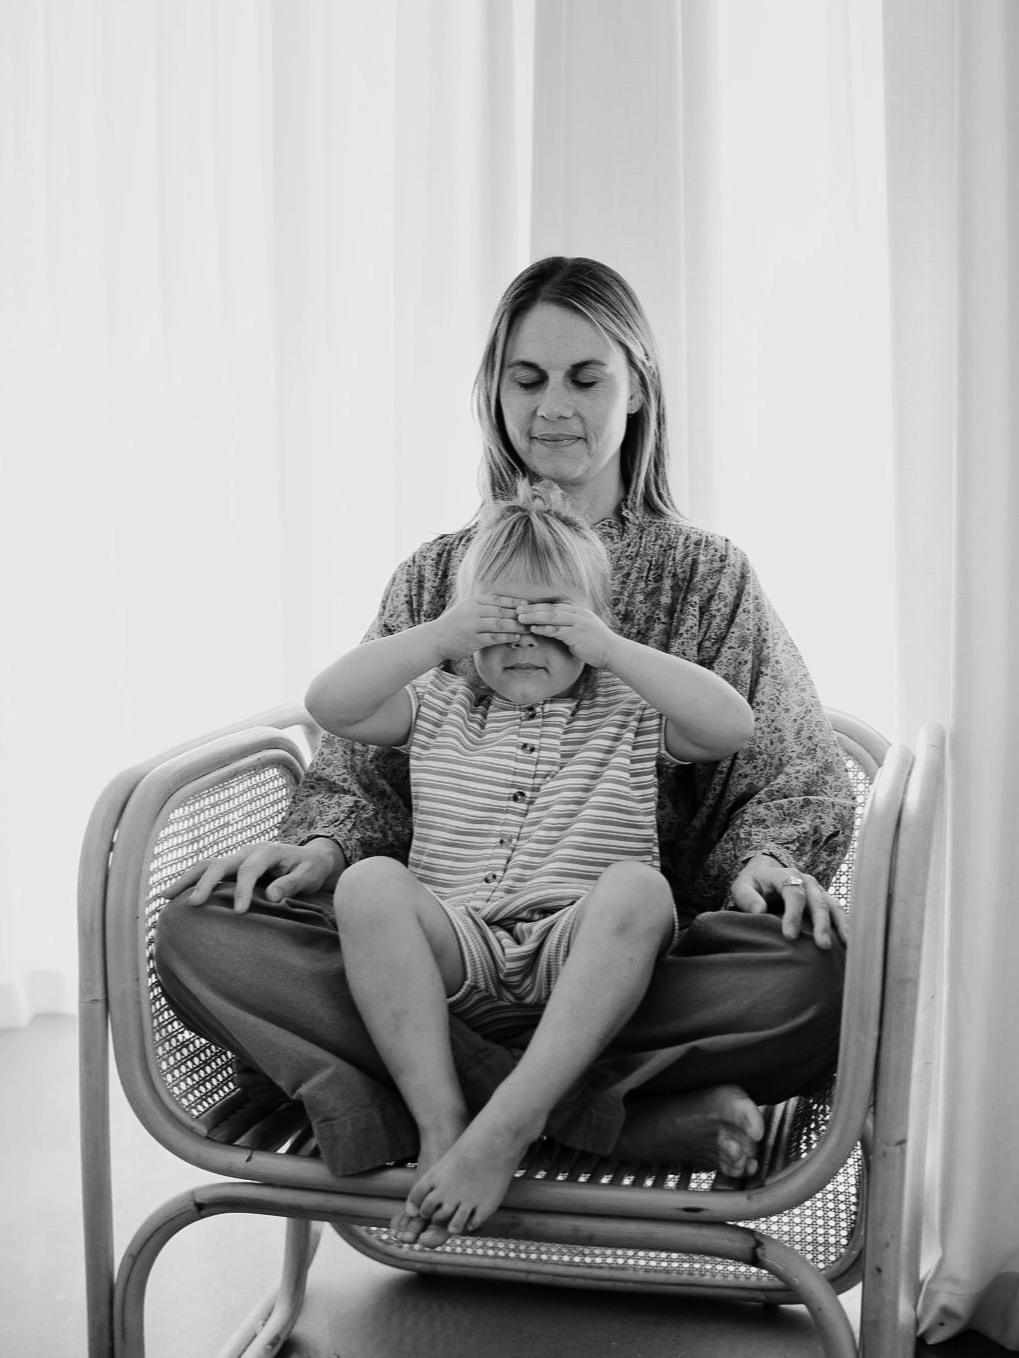 Discover Meditation with Natalie - Vedic meditation is a powerful yet simple mental technique. It is perfect for the demands of our busy modern lives as it de-excites our nervous system and enables us to achieve a deep state of rest.